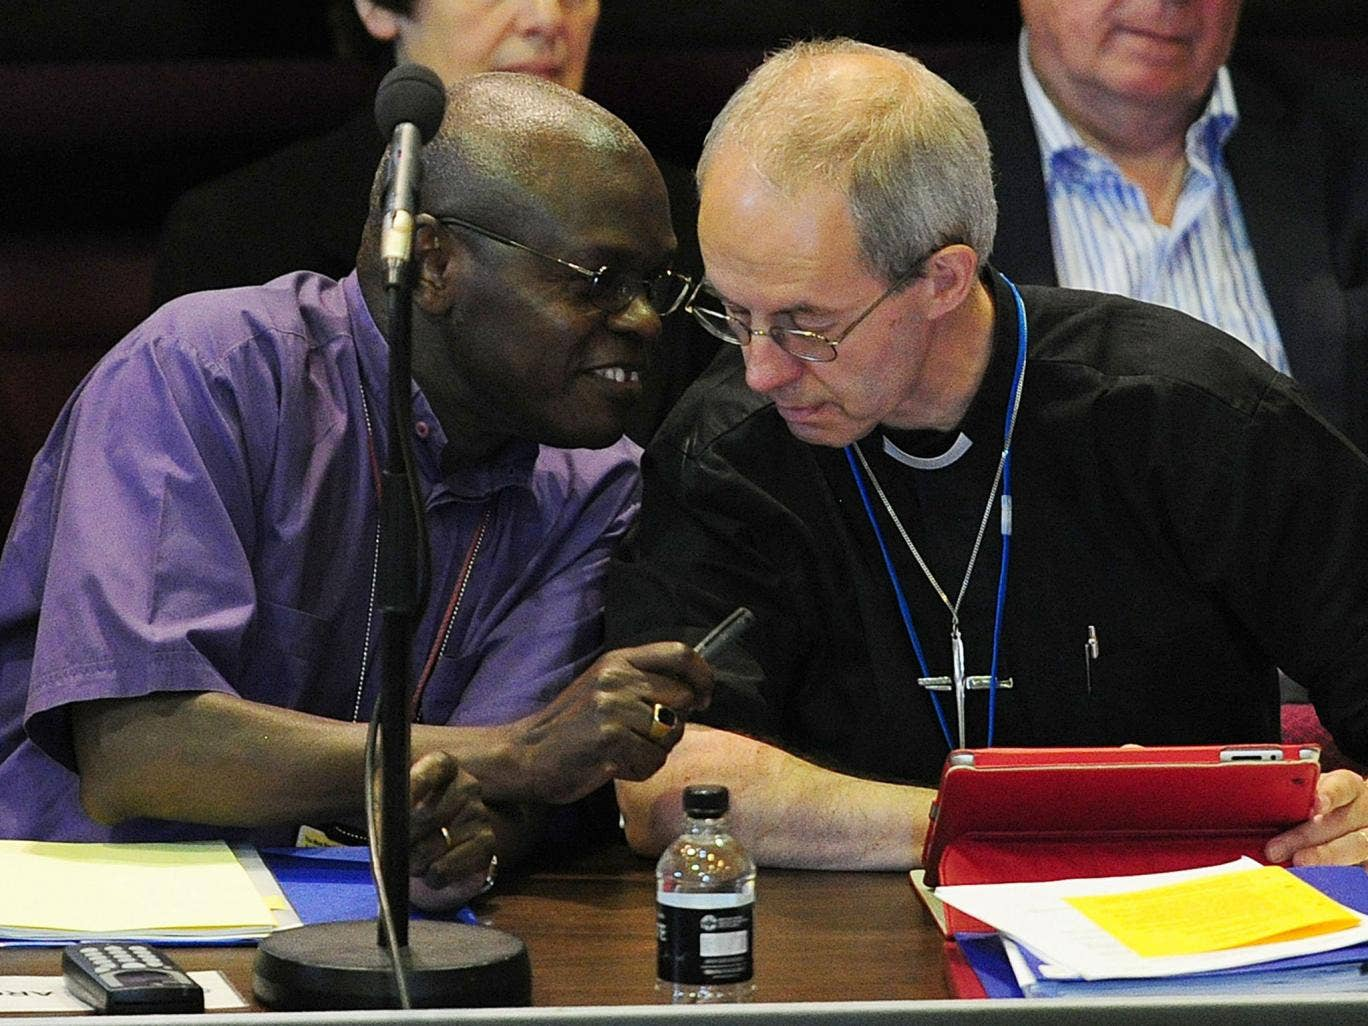 The Archbishop of York Dr John Sentamu and the Archbishop of Canterbury the Most Rev Justin Welby, talk to each other during discussions over women in the Episcopate at the General Synod